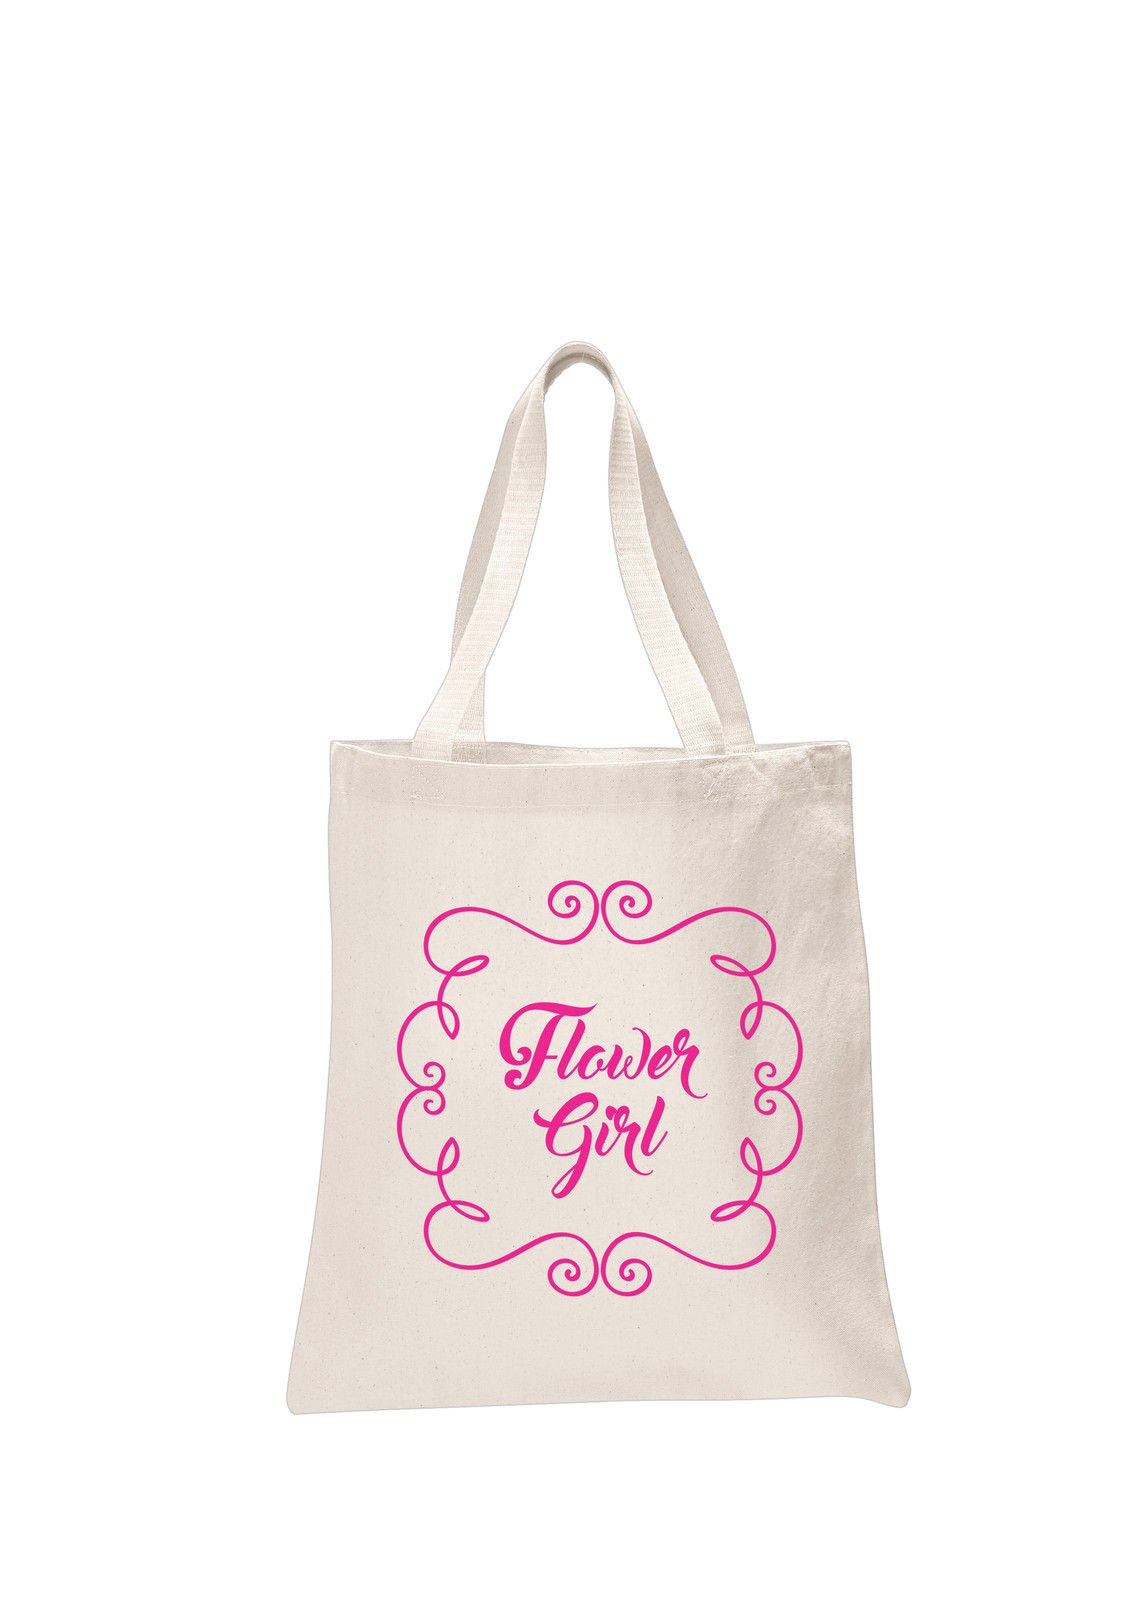 2 x Flower Girl Natural Bridal Printed Wedding Favour Tote Bags bride hen party gift sets